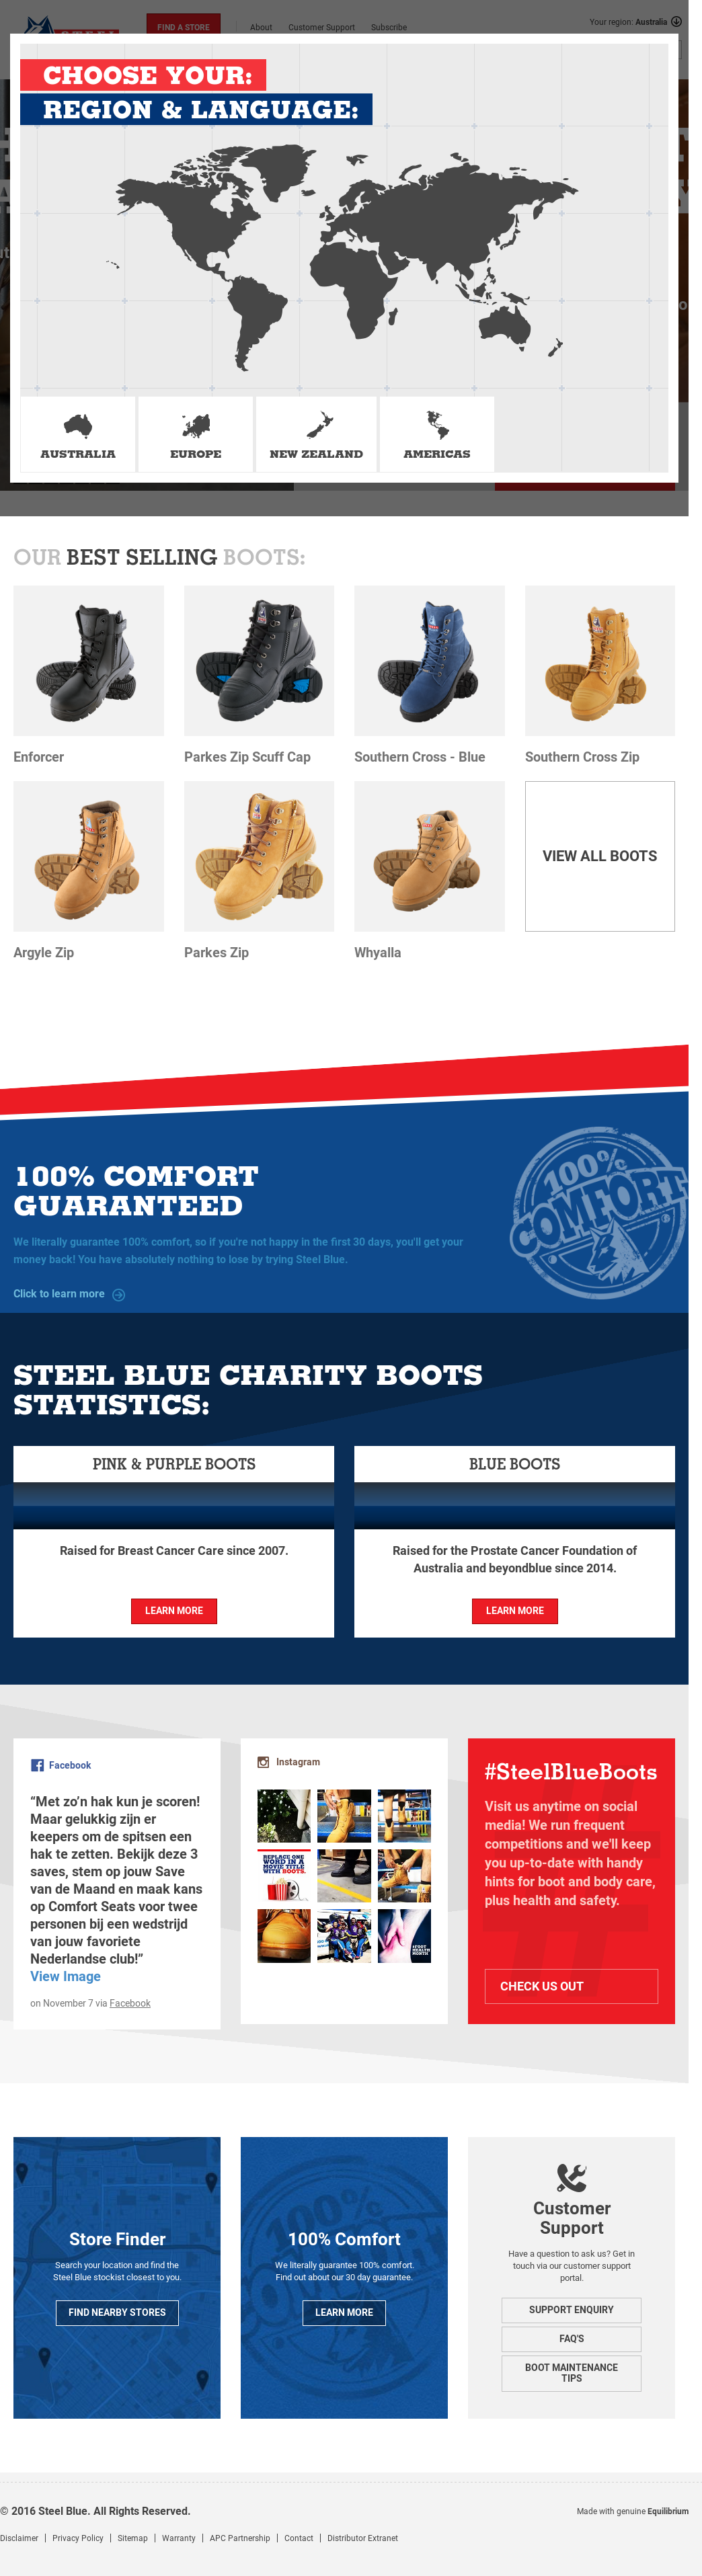 Steel Blue Boots Competitors, Revenue and Employees - Owler Company